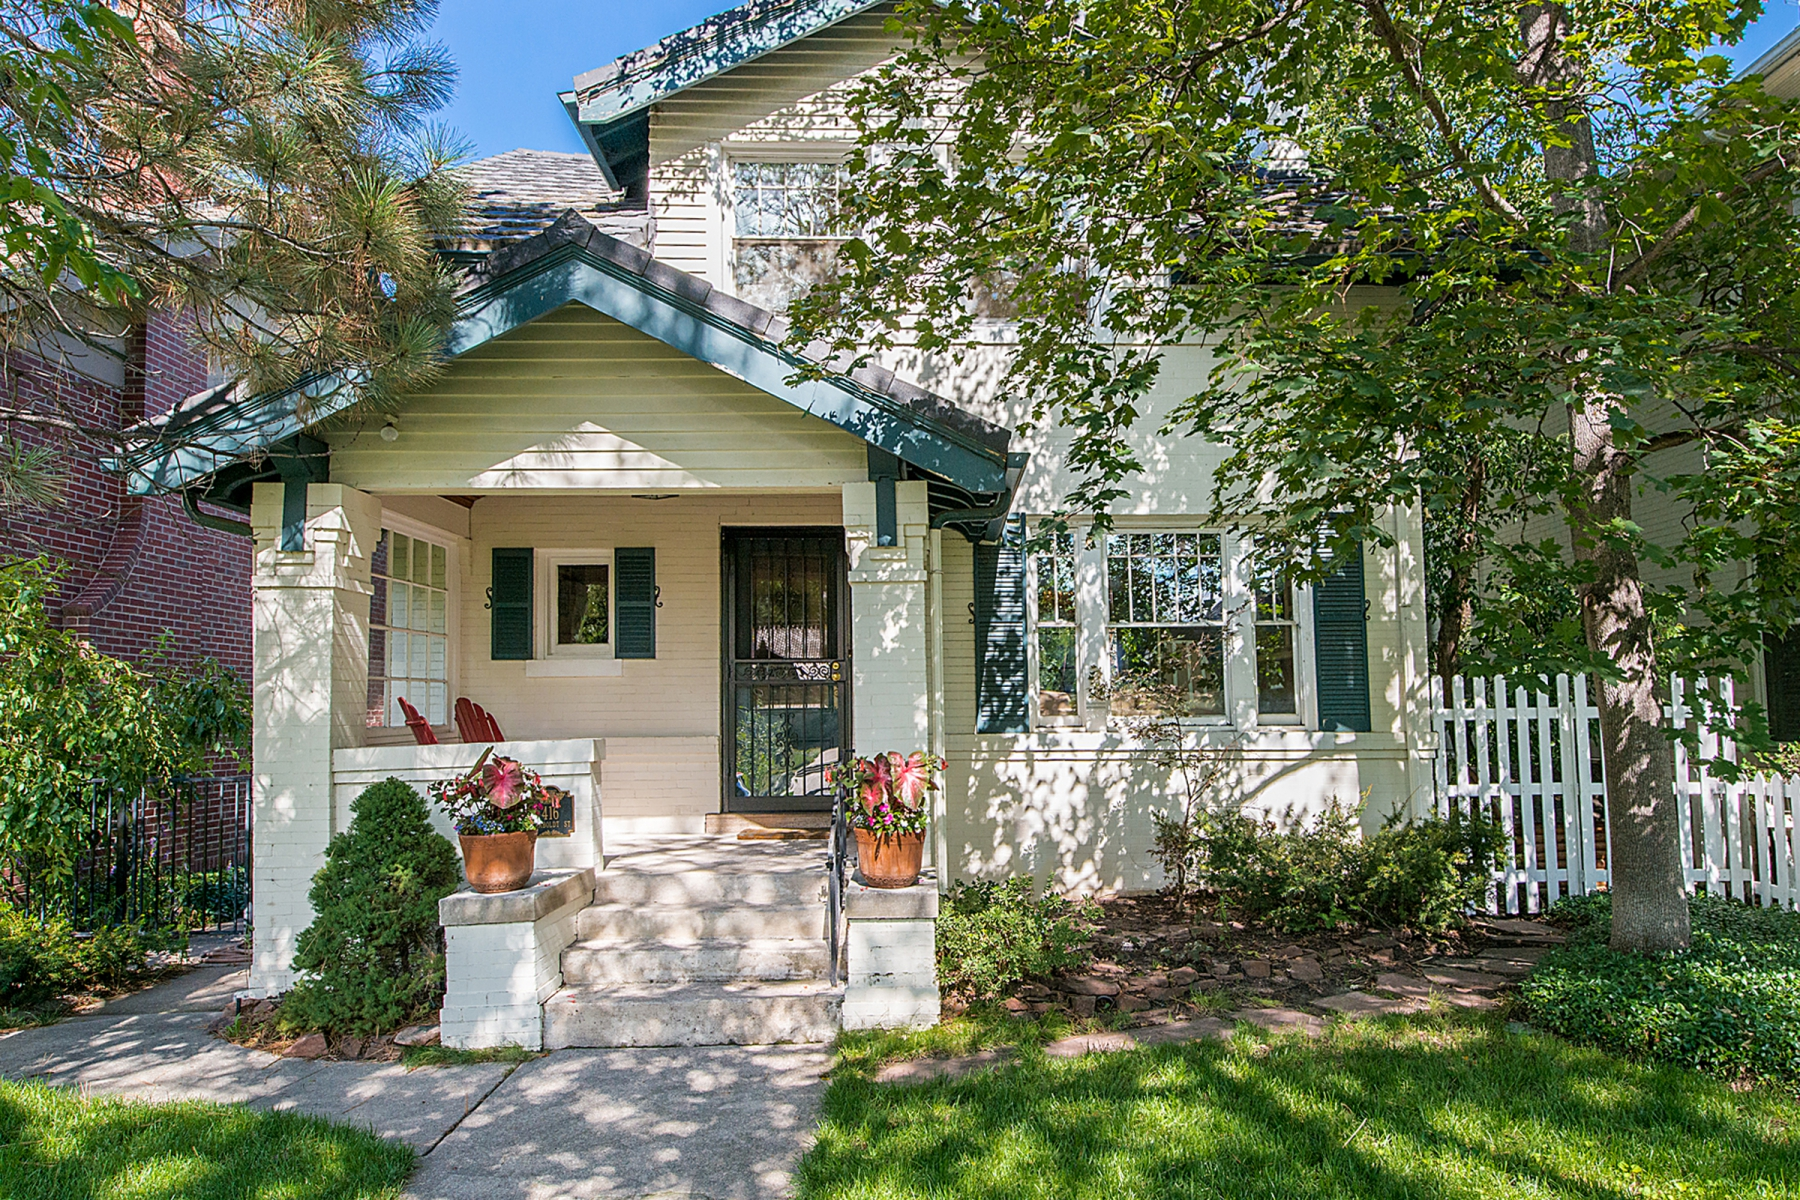 Single Family Home for Sale at Charming Historic Country Club Home 416 Humboldt Street Denver, Colorado 80218 United States